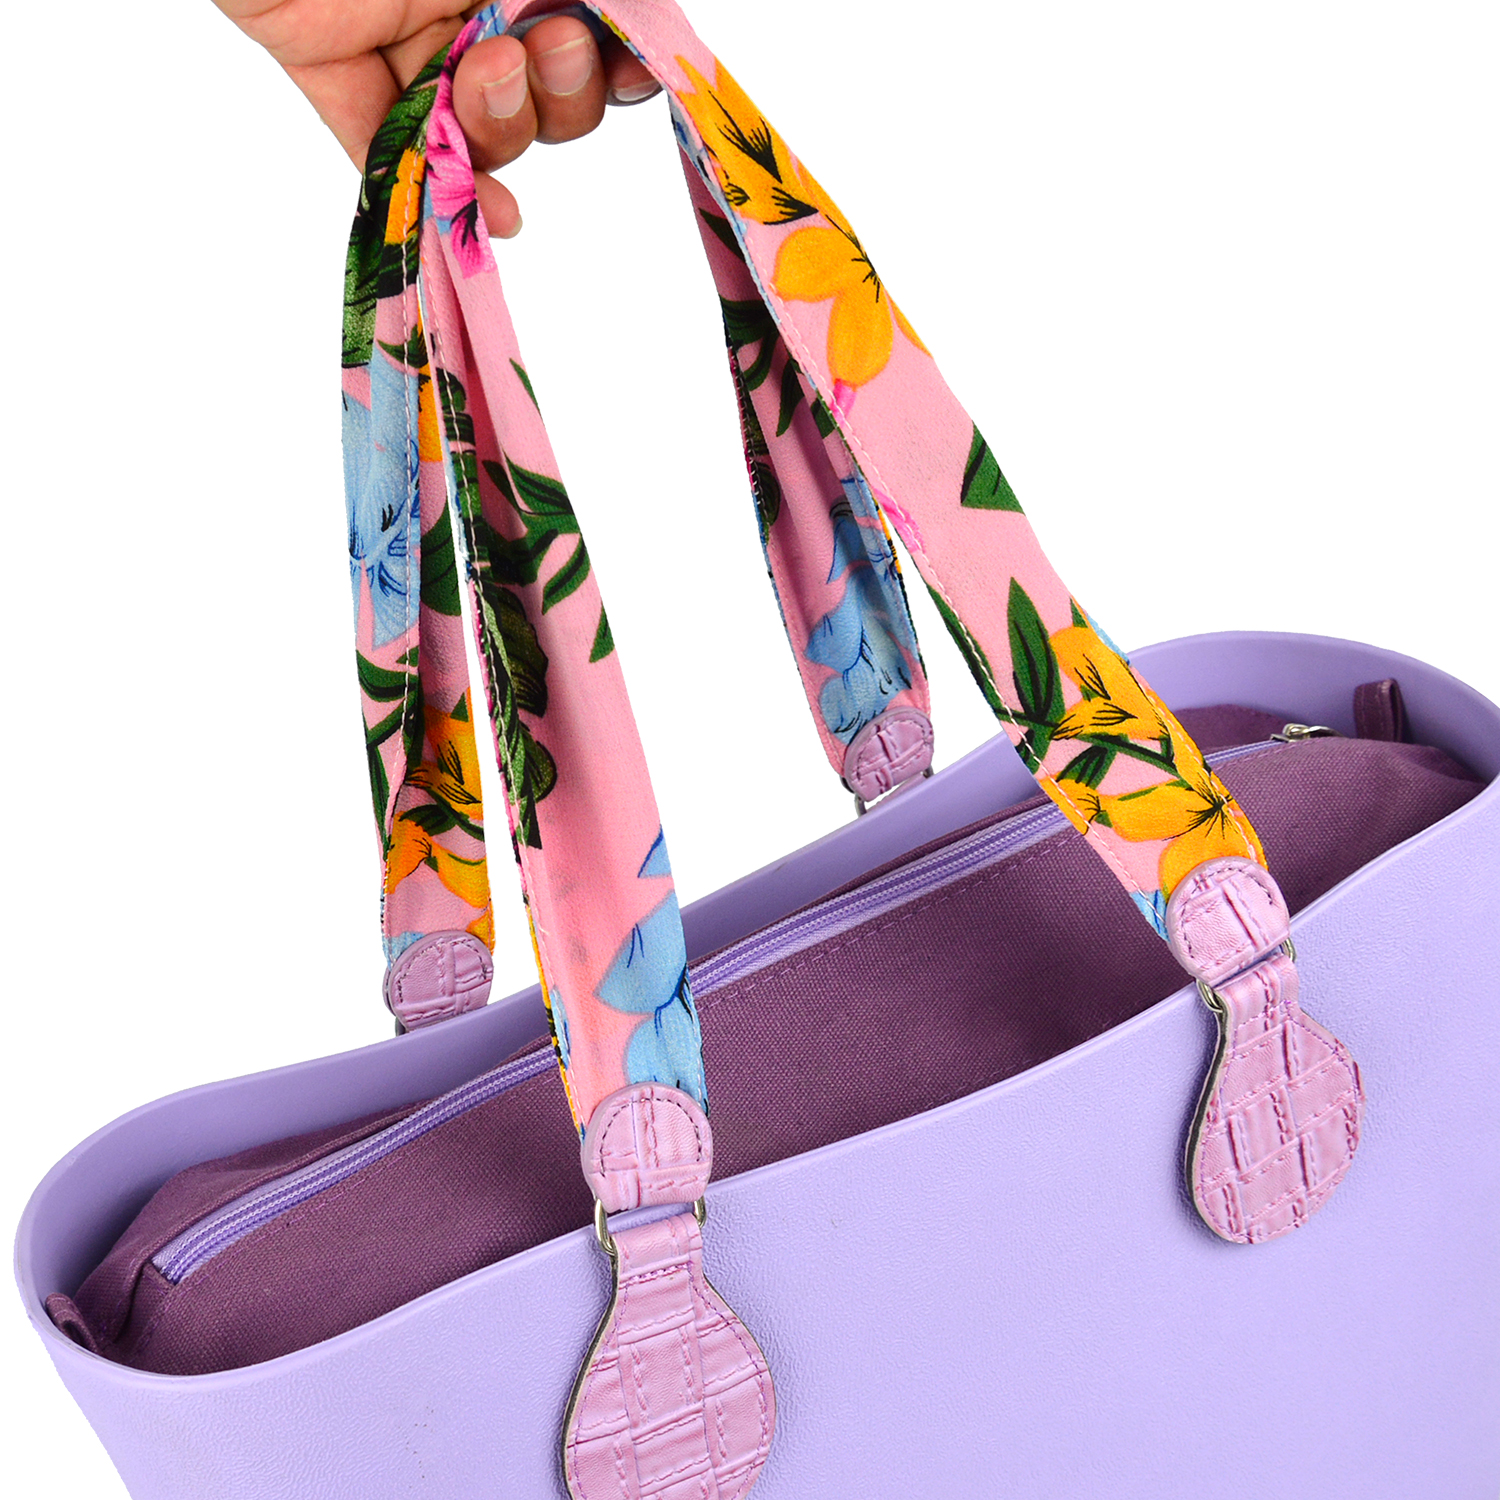 Image 5 - 2019 New 1 Pair Soft Floral Fabric Handle with Patchwork Drop End for Bag O Bag Handles for EVA Obag Handbag Womens BagsBag Parts & Accessories   -